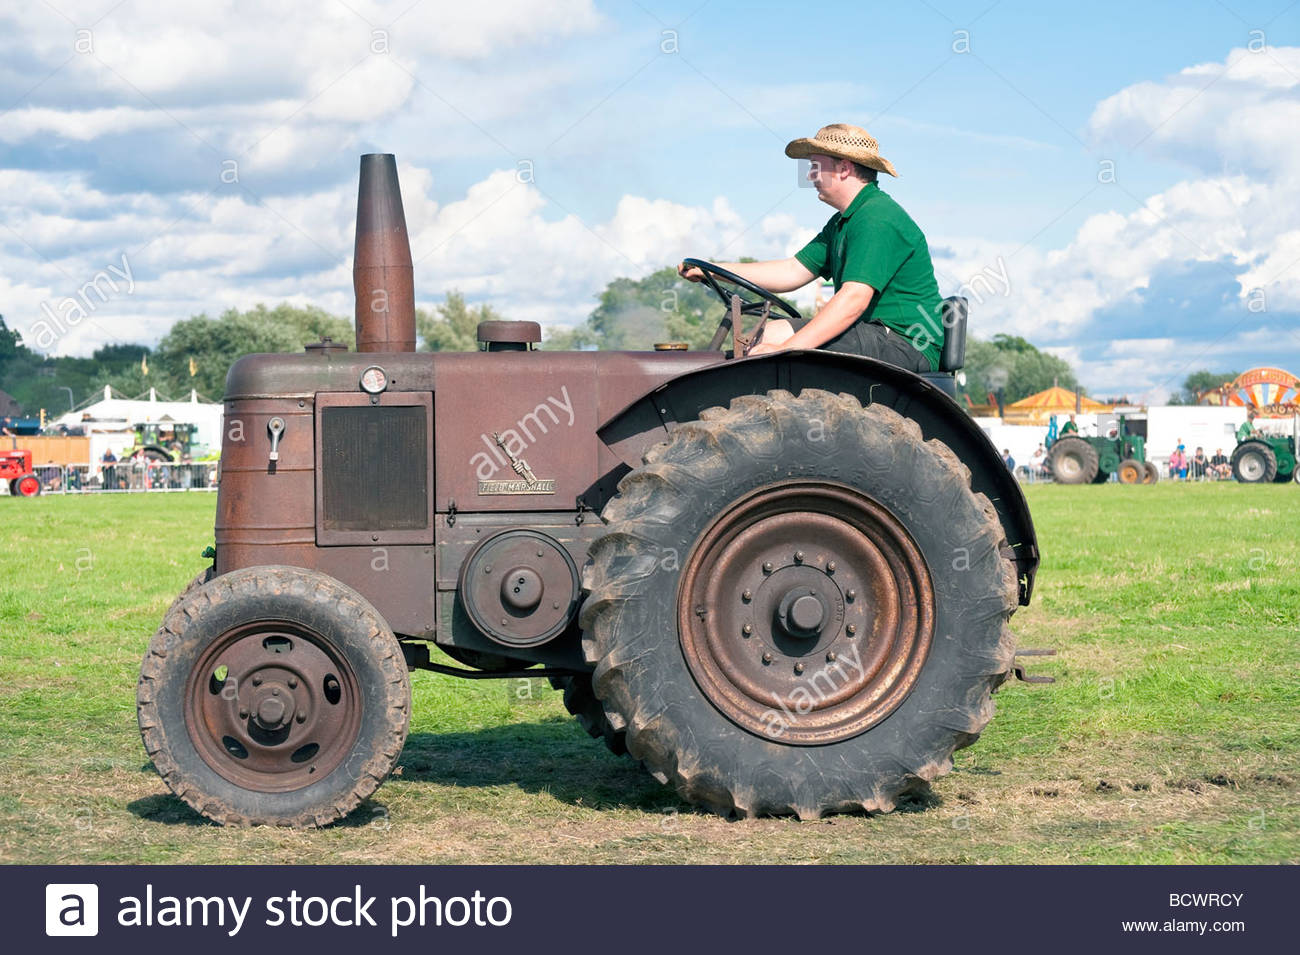 Vintage tractor at Welland Steam Rally, UK. 'Field Marshall' classic tractor. Parade in show ring. Rusty - Stock Image